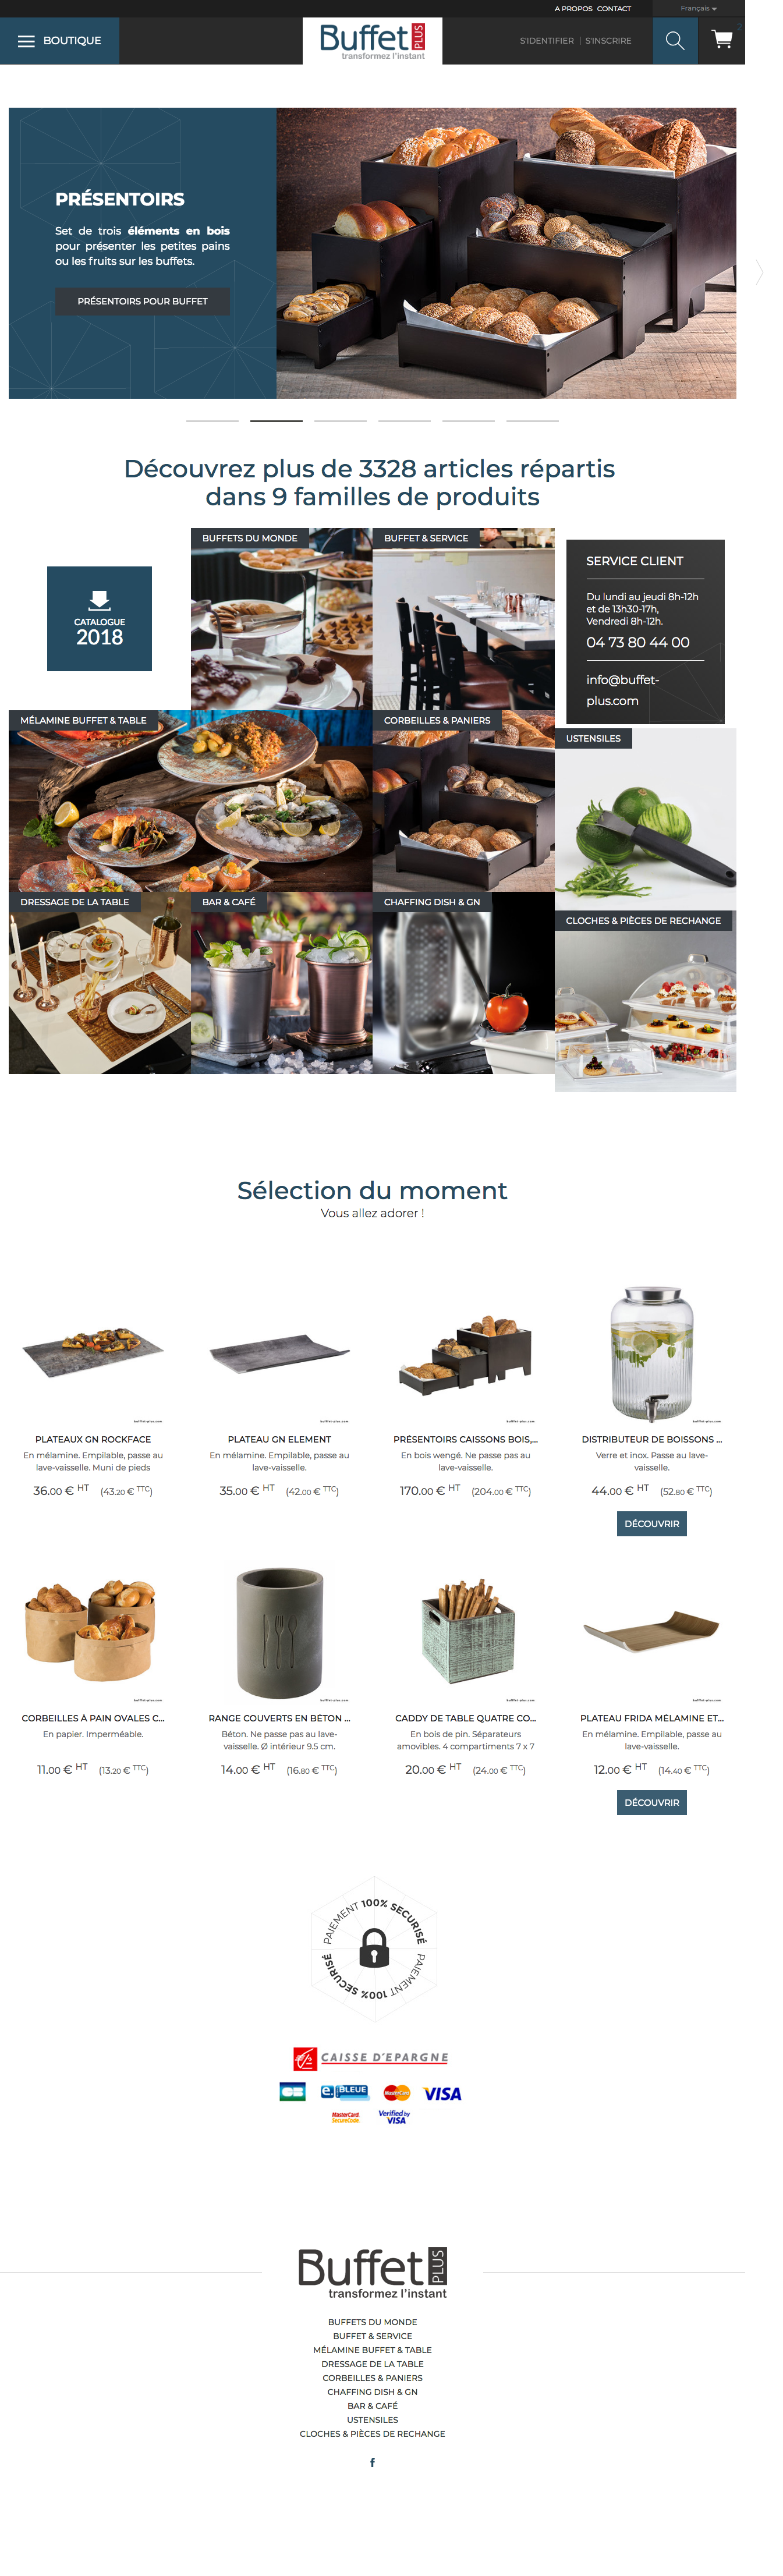 Buffet-plus-APS-materiel-restauration.png